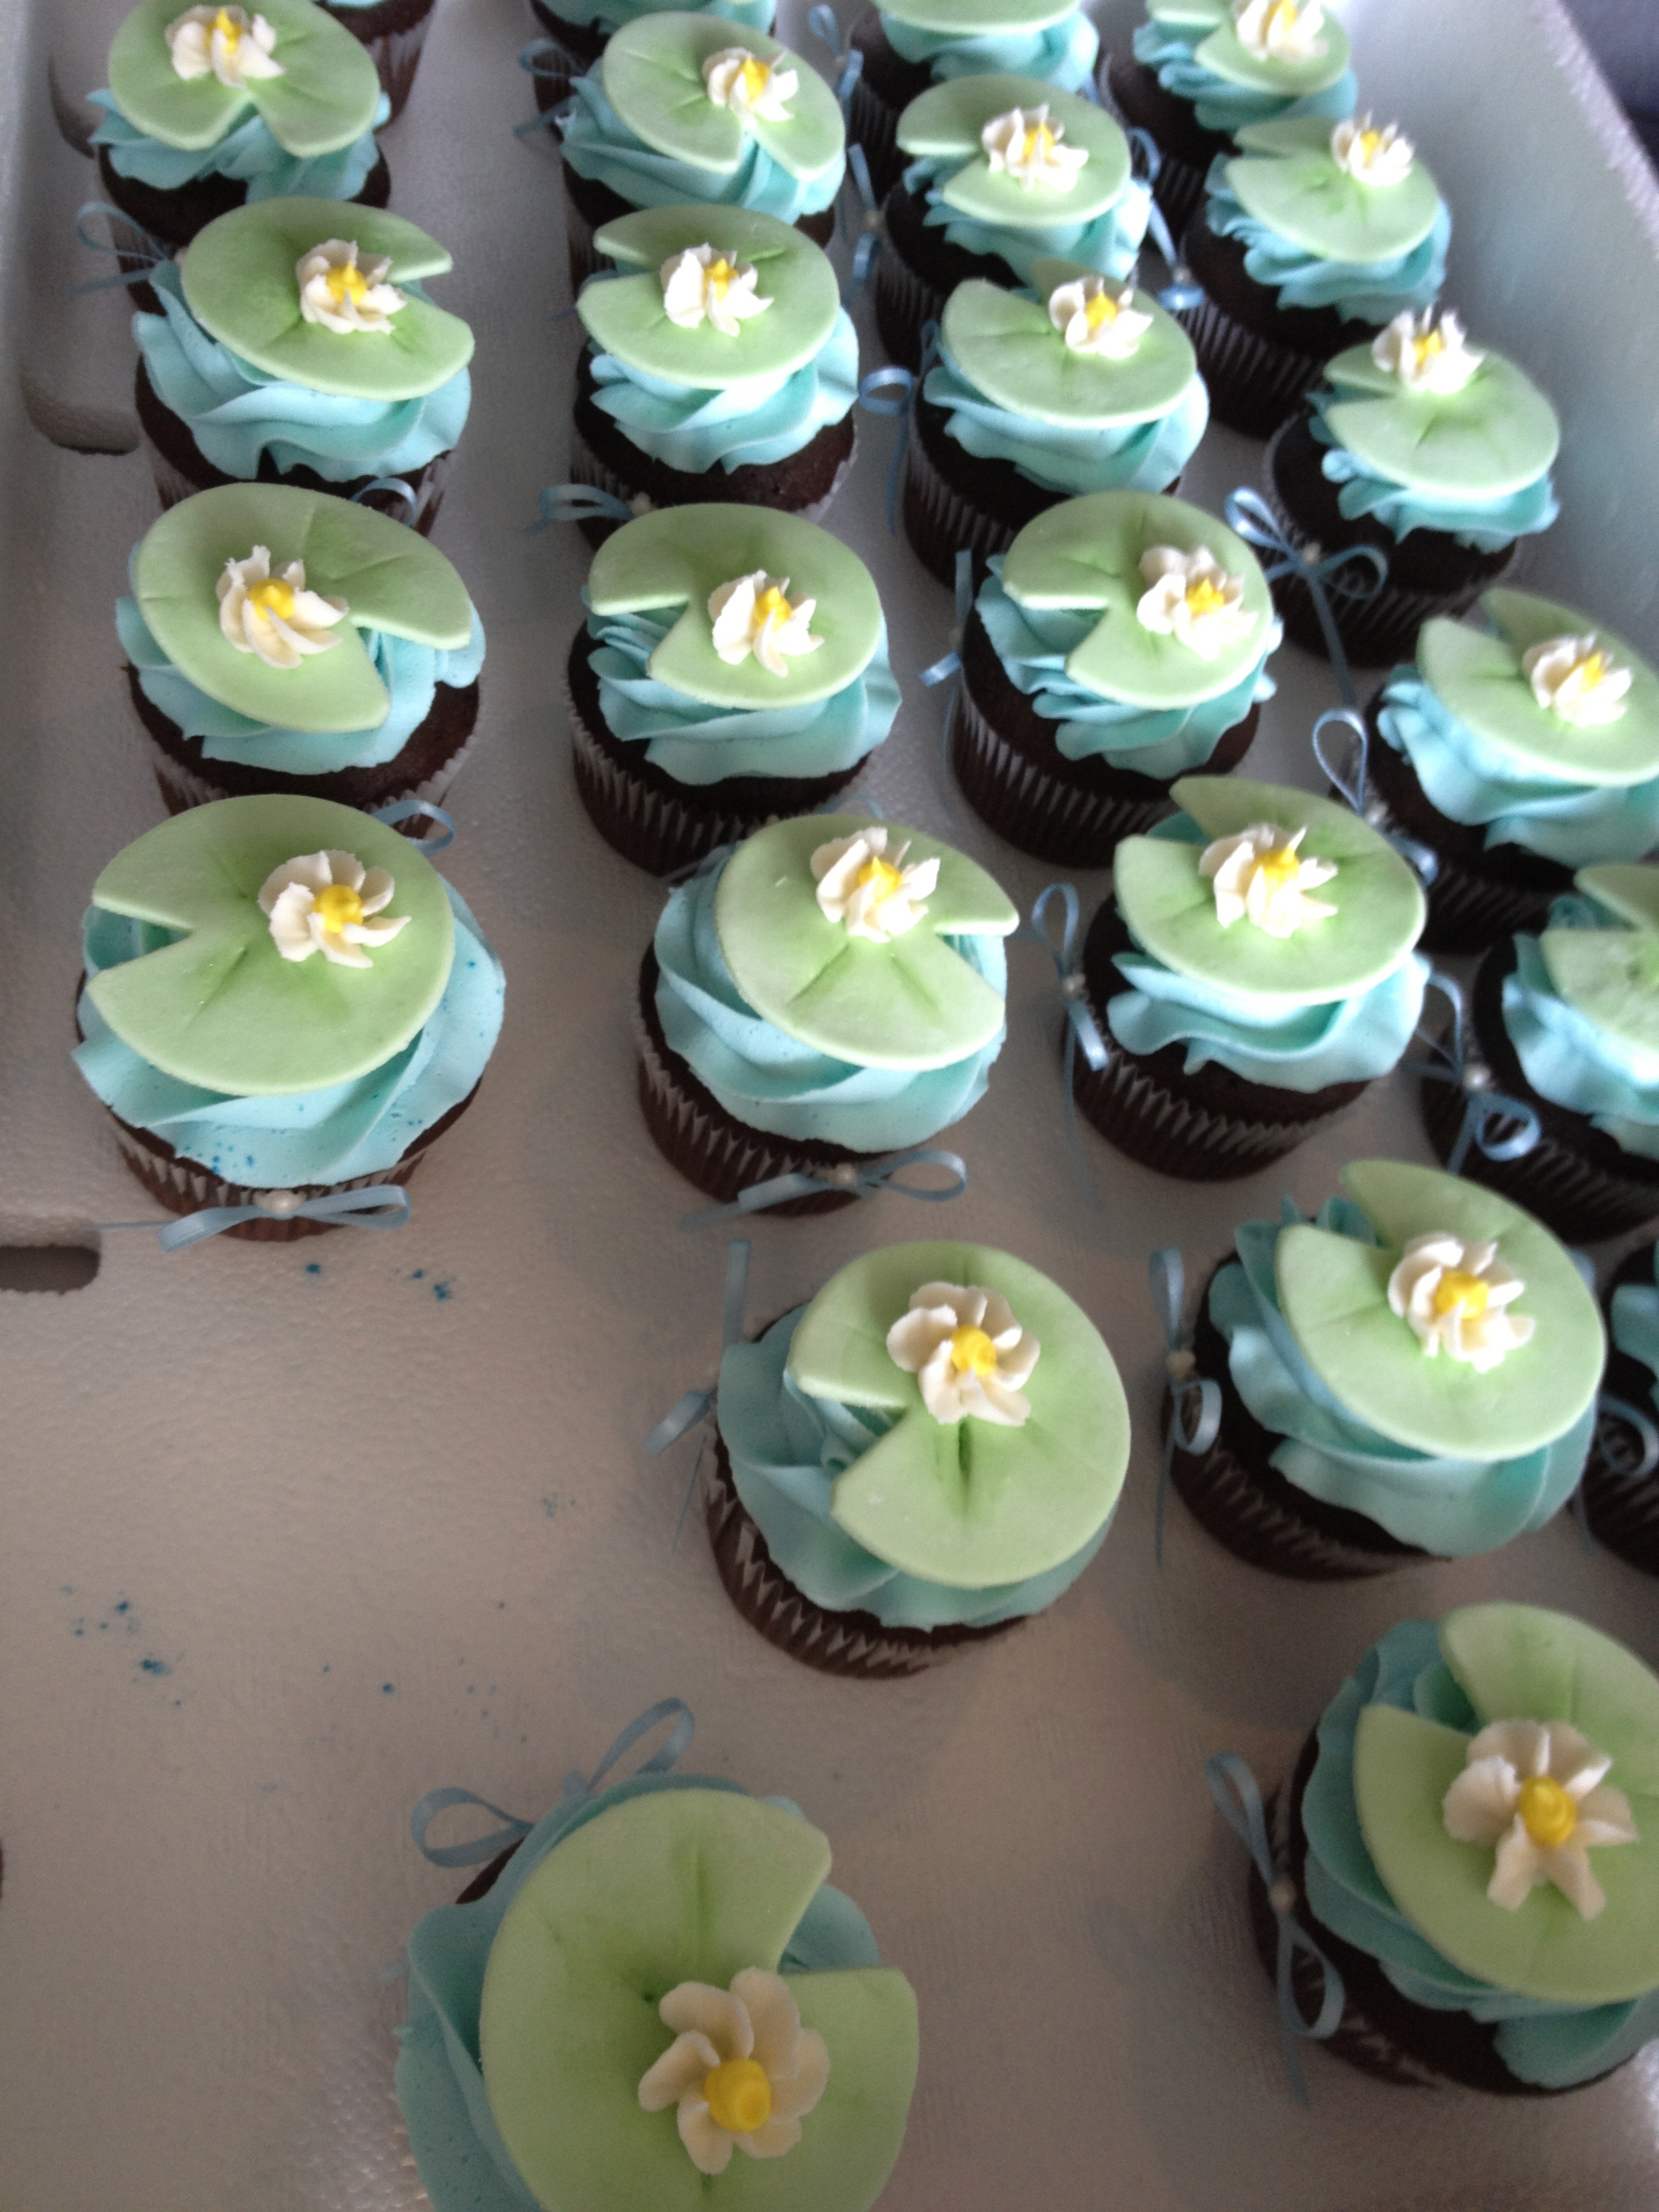 Lily pad cupcakes cupcake cakes sweet treats let them